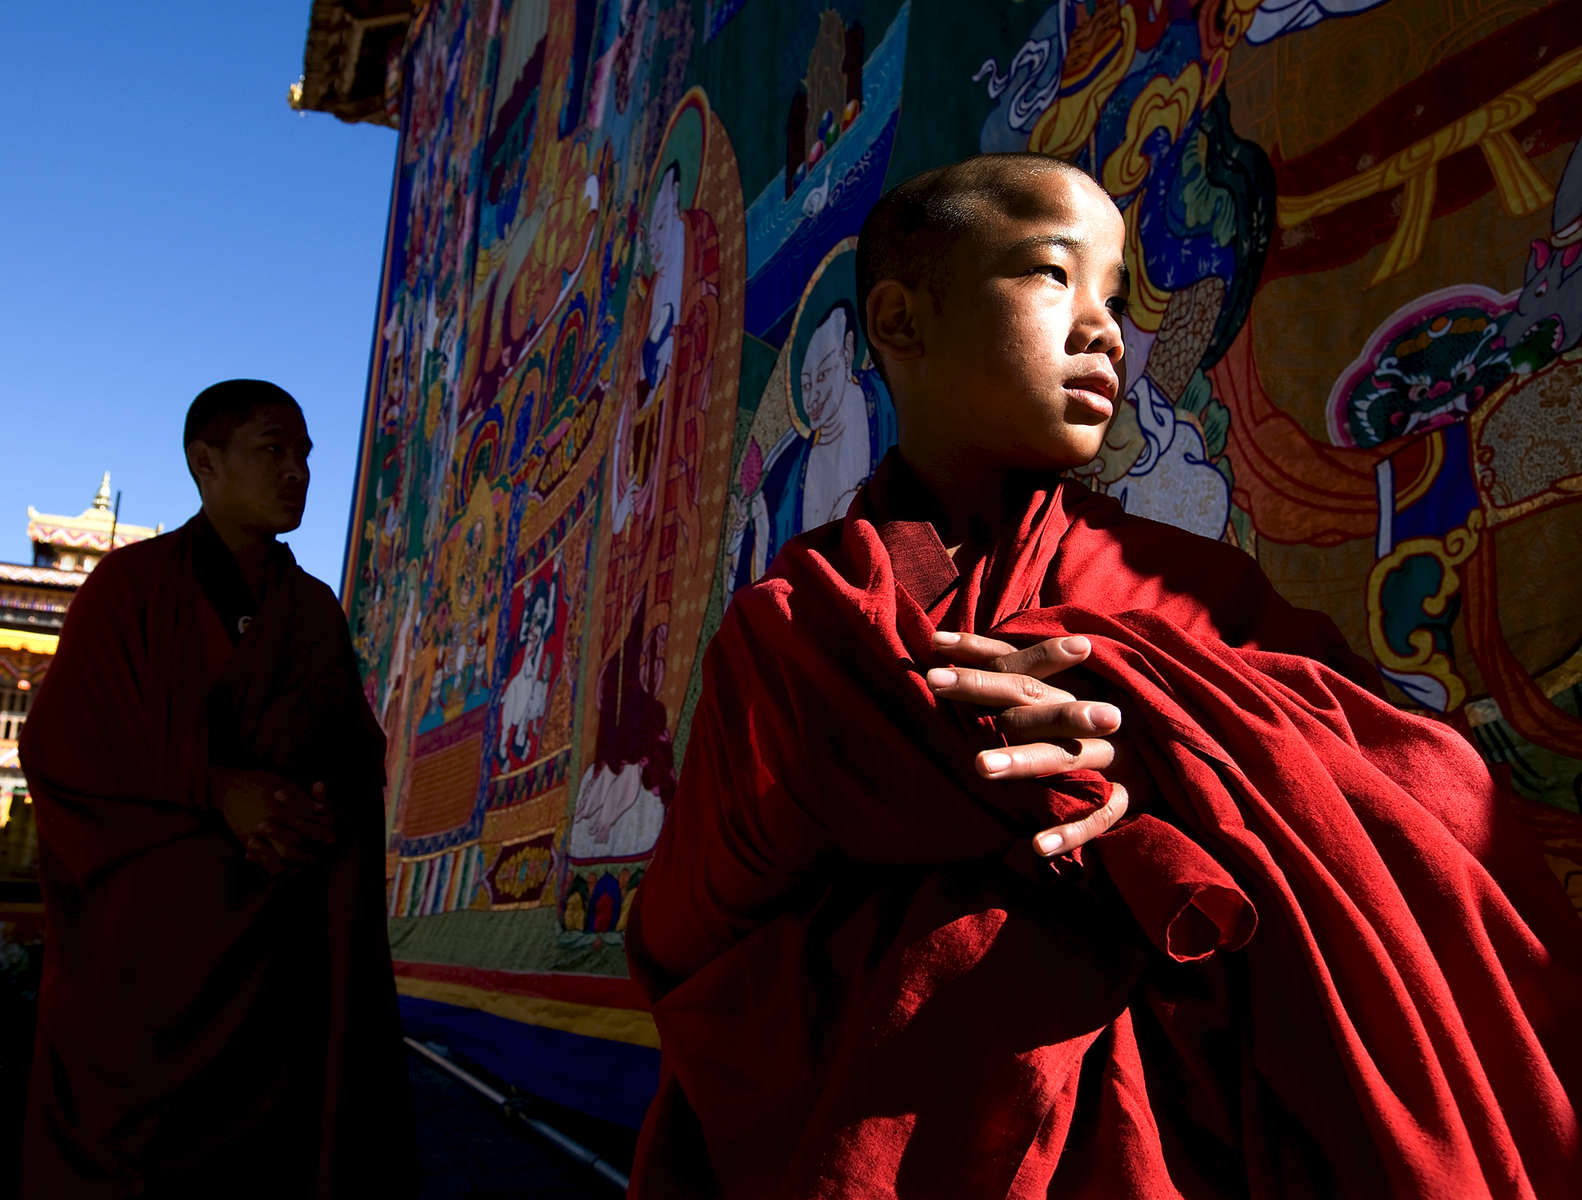 THIMPHU, BHUTAN -NOV 6, 2008: Bhutanese monks stand next to a large Thangkha painting at the Dratshang Kuenra Tashichho Dzong waiting for His Majesty Jigme Khesar Namgyel Wangchuck to arrive for the Coronation ceremony November 6, 2008 in Thimphu, Bhutan. The young Bhutanese king, anOxford-educated bachelor became the youngest reigning monarch on the planet today. He was handed the Raven Crown by his father, the former King Jigme Singye Wangchuck, in an ornate ceremony in Thimpu, the capital. The tiny Himalayan kingdom, a Buddhist nation of 635,000 people is wedged between China and India .  (Photo by Paula Bronstein/Getty Images)